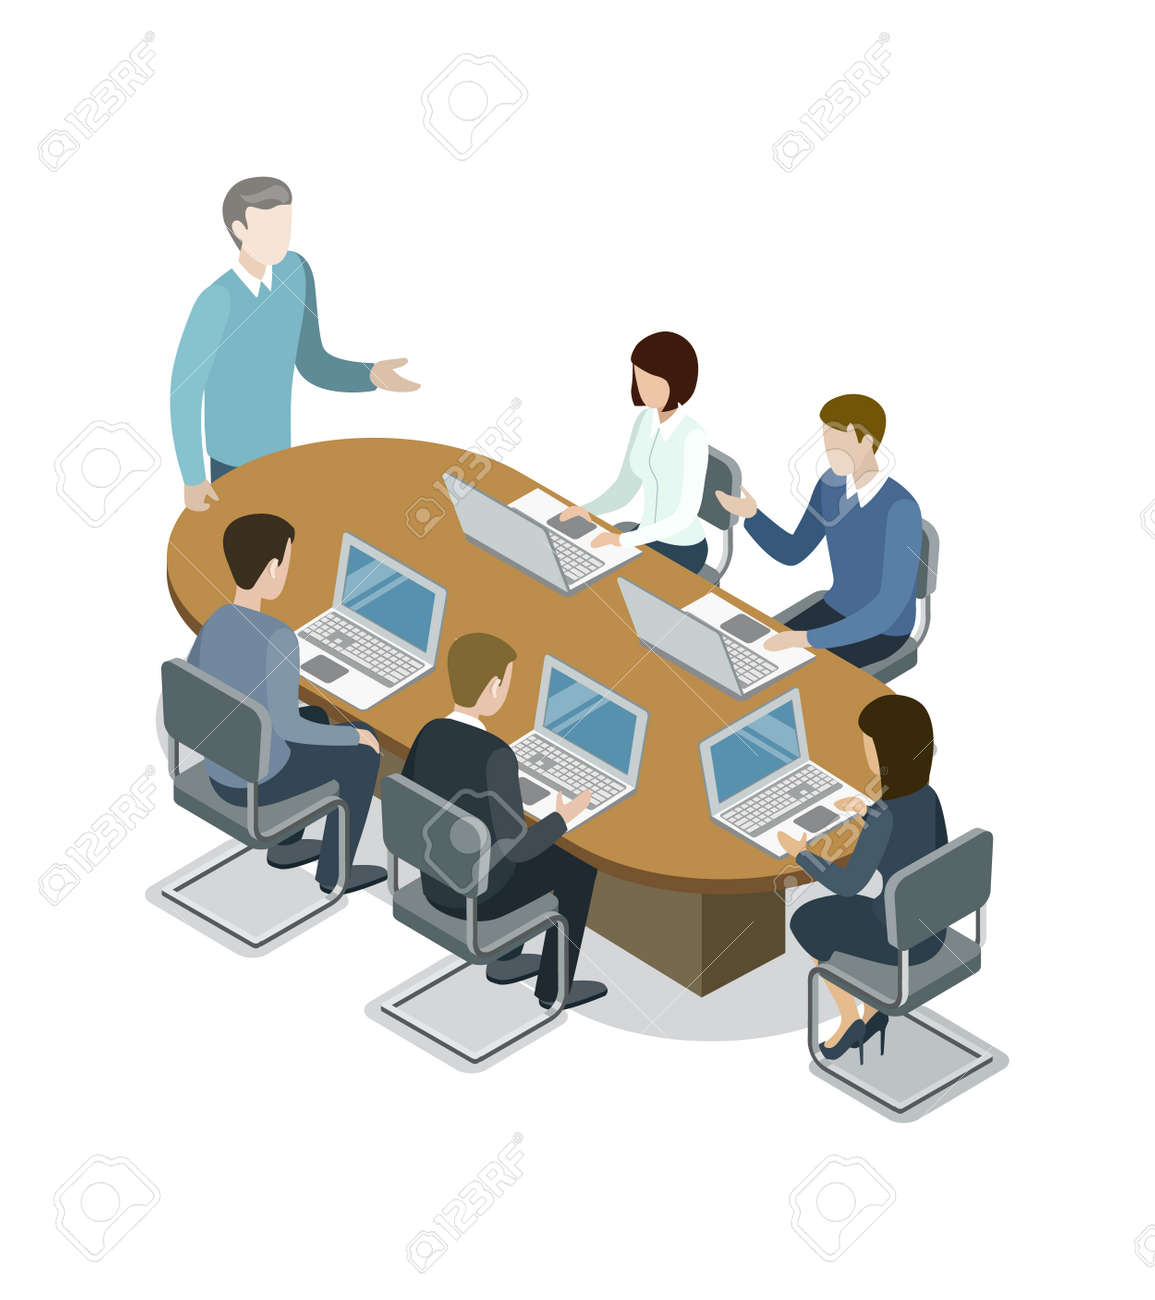 Company Business Meeting Isometric 3D Icon Corporate Office Life Teamwork And Idea Generation Conceptual